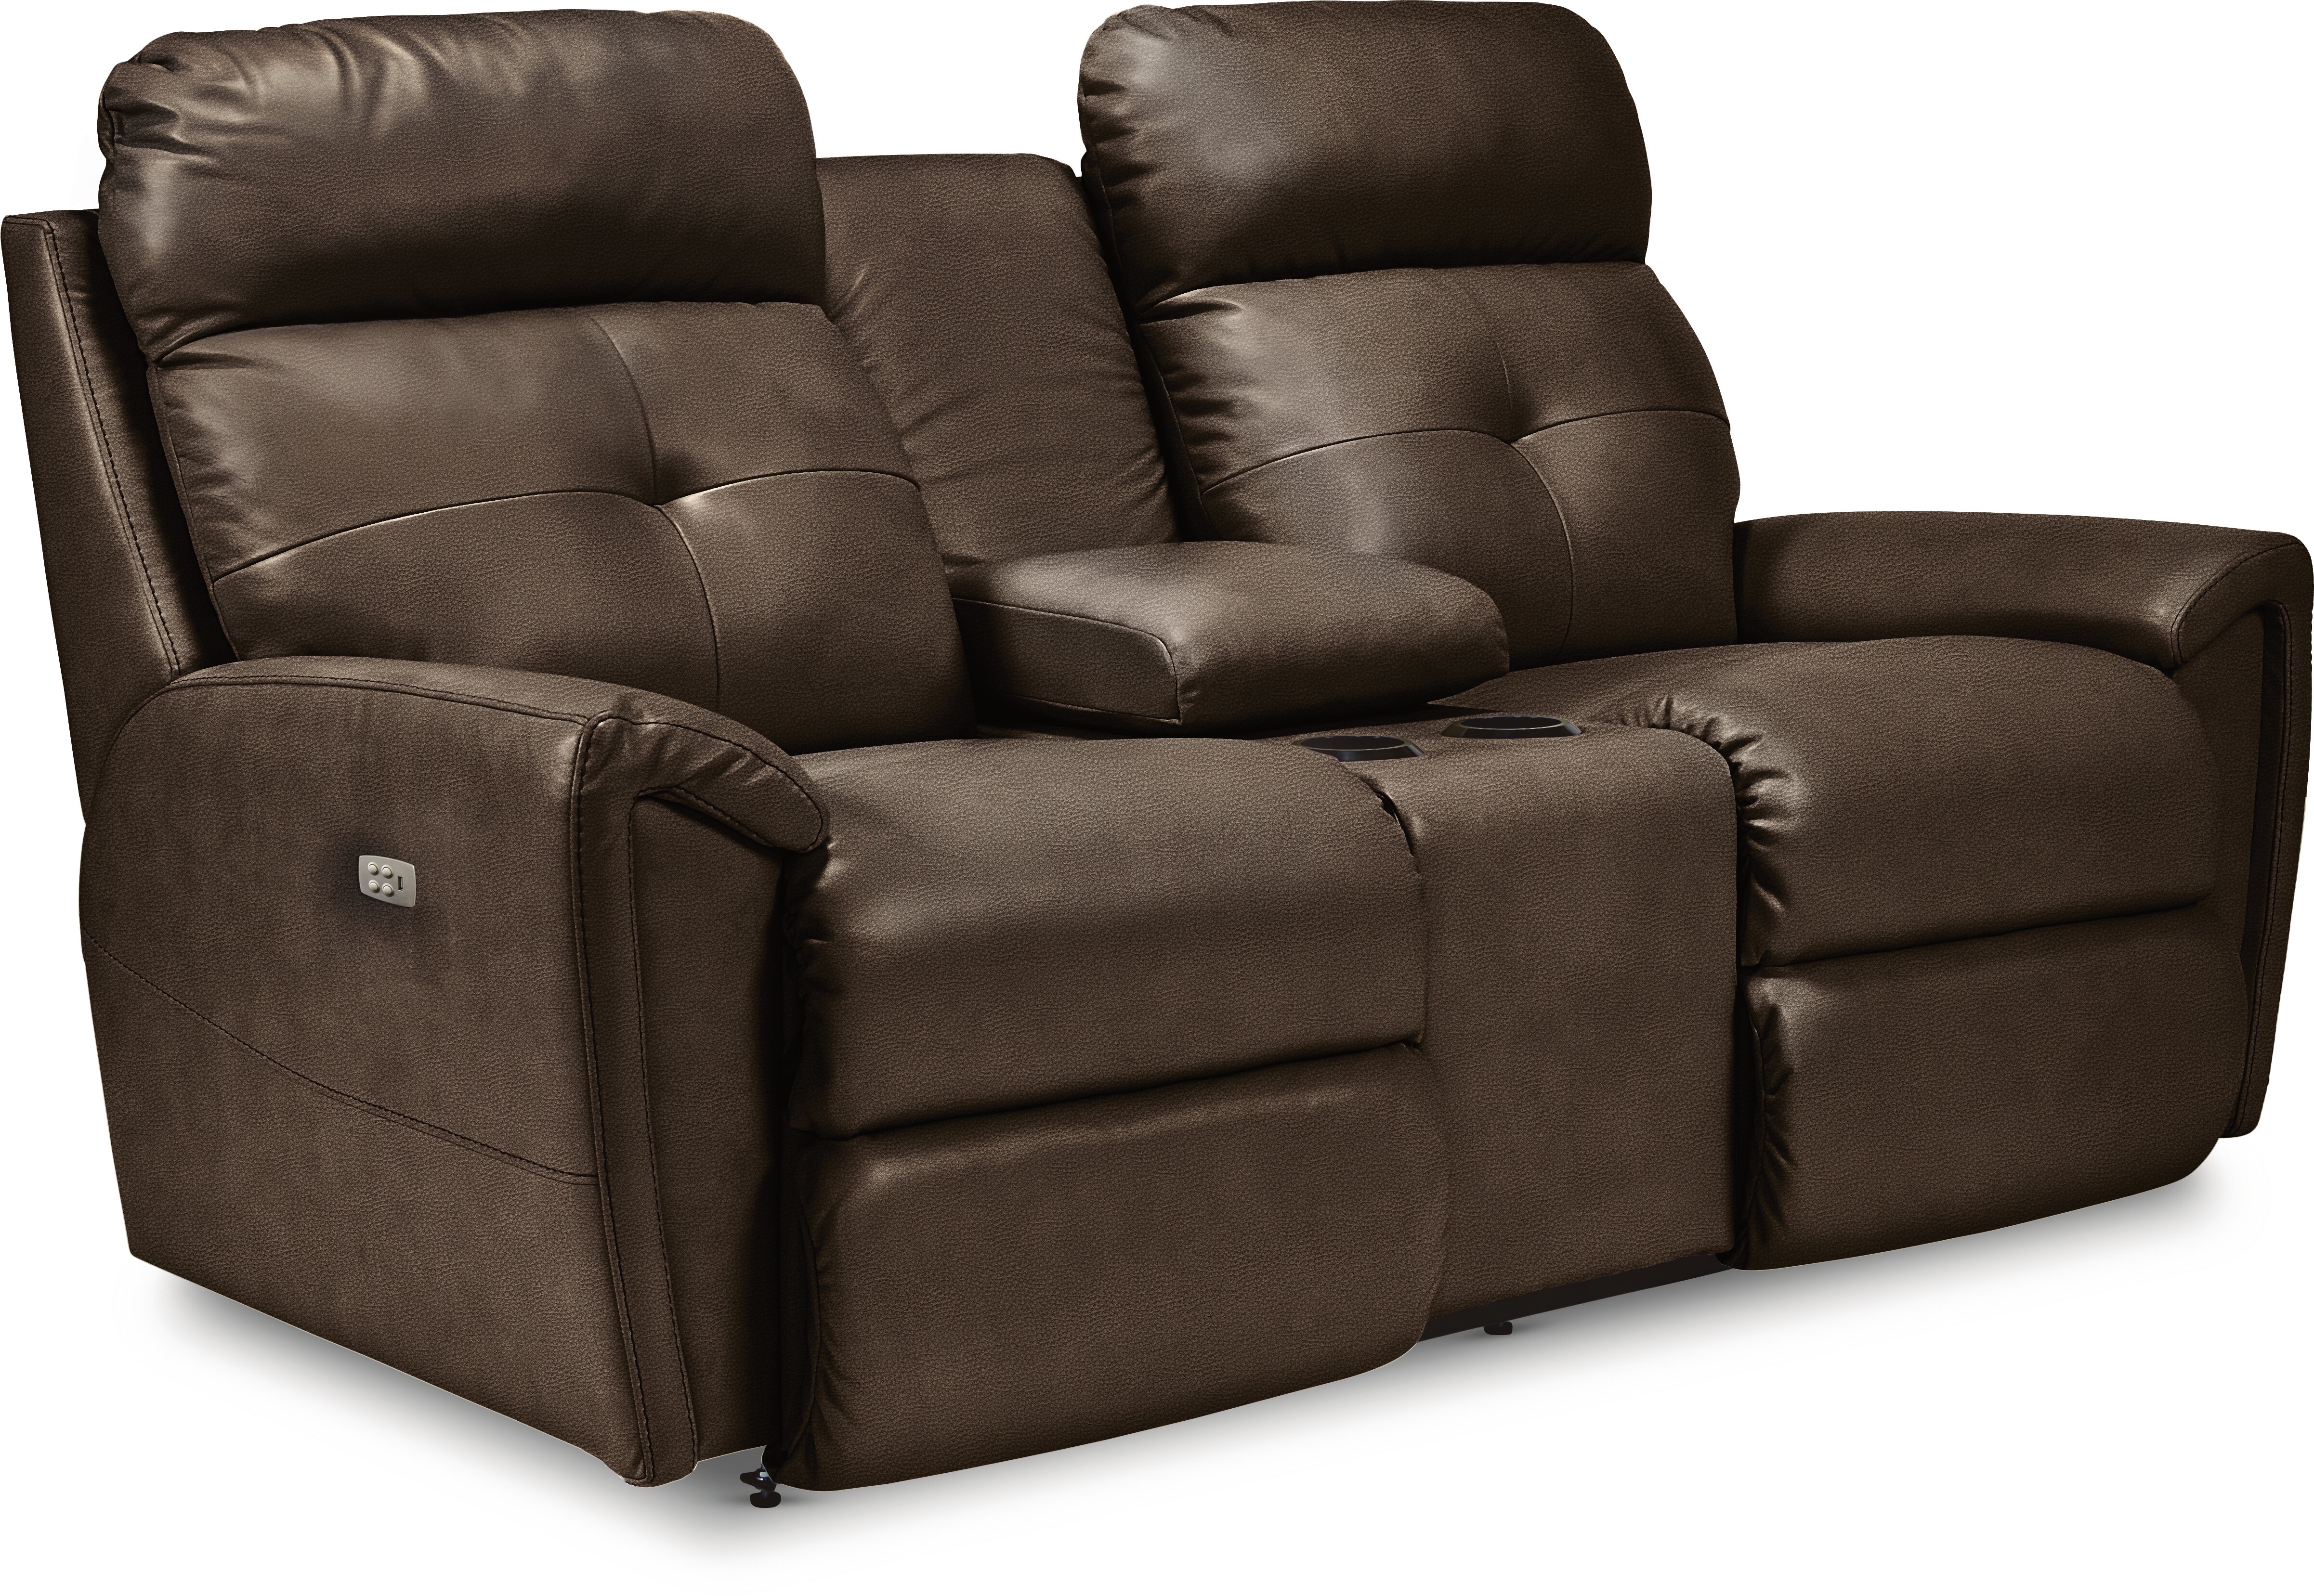 Astonishing Douglas Reclining Loveseat Pabps2019 Chair Design Images Pabps2019Com